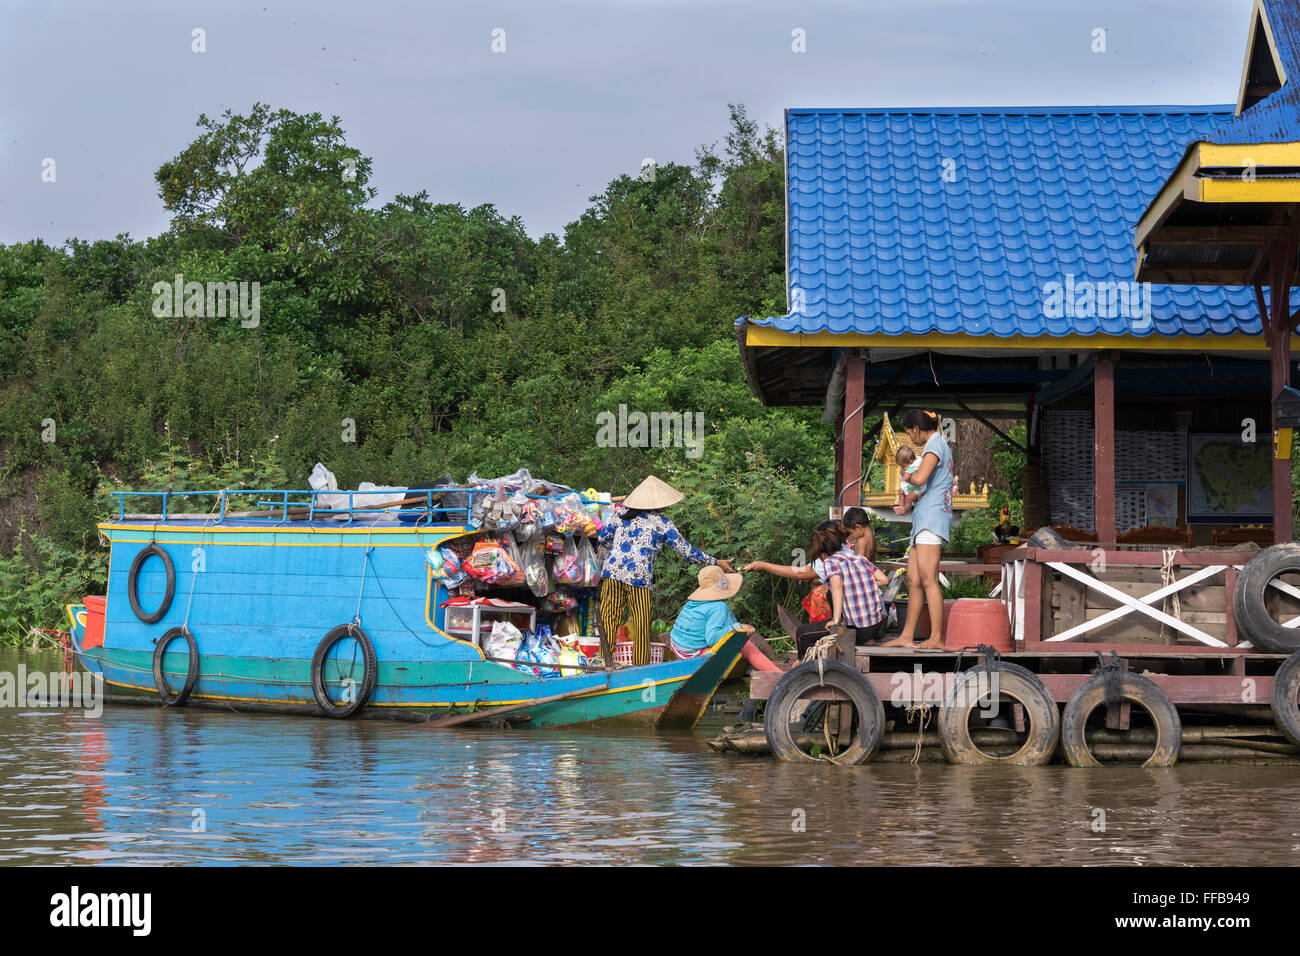 Buying goods from the odds and ends boat, Chong Khneas floating village, Siem Reap River, Cambodia - Stock Image